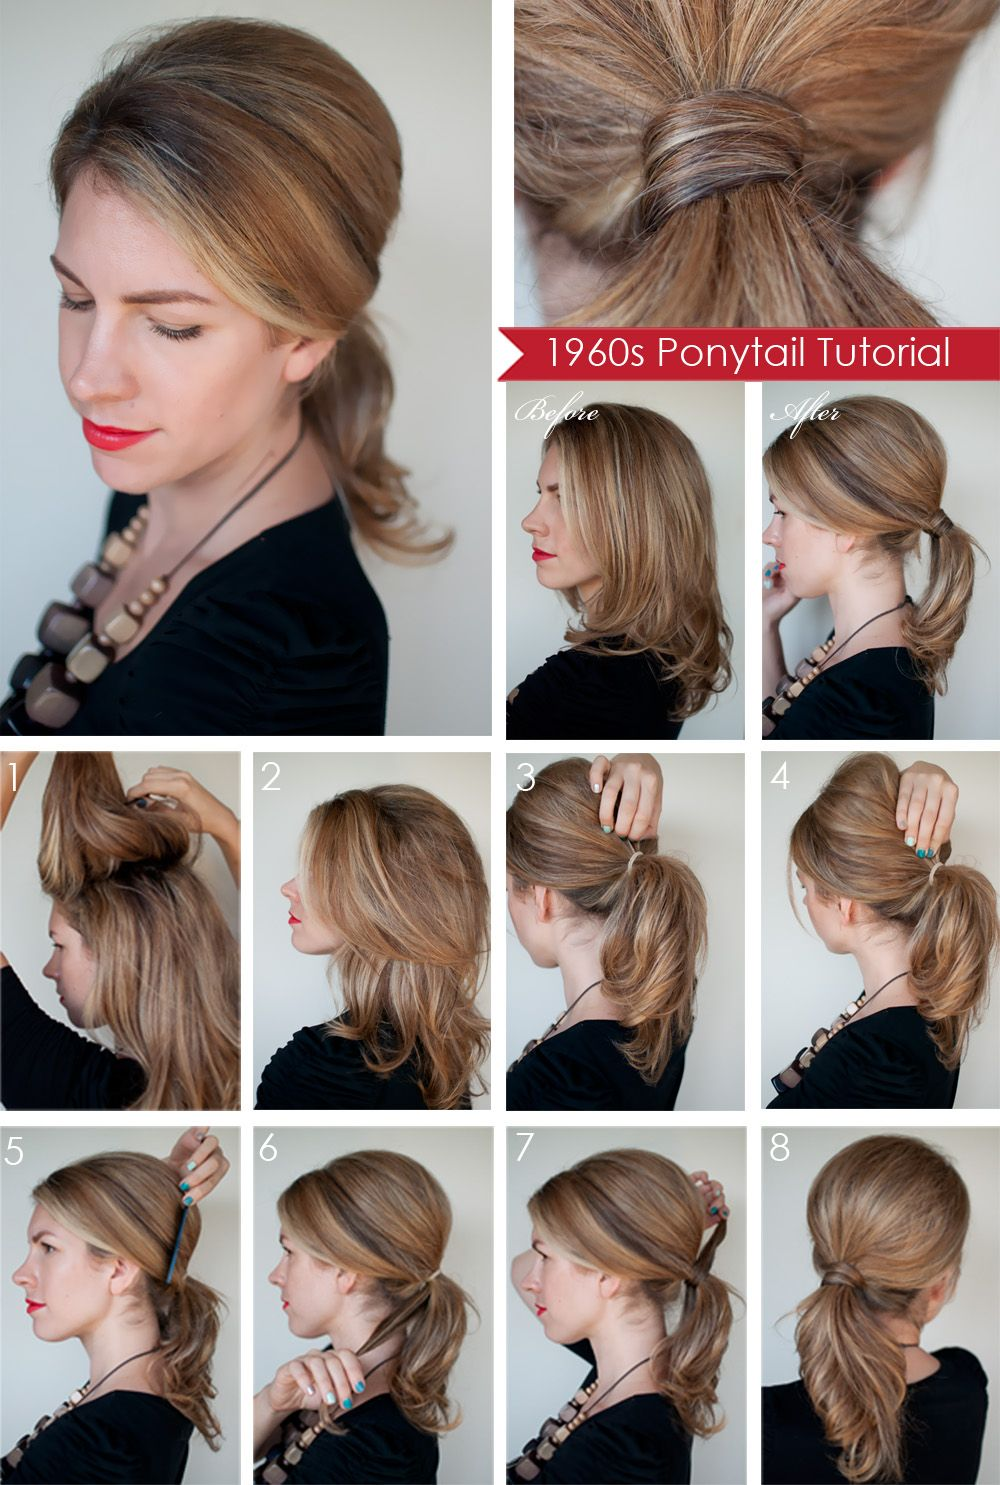 Cute Ponytail Hairstyles 15 Different Ways To Make Cute Ponytails  Ponytail Loose Hairstyle